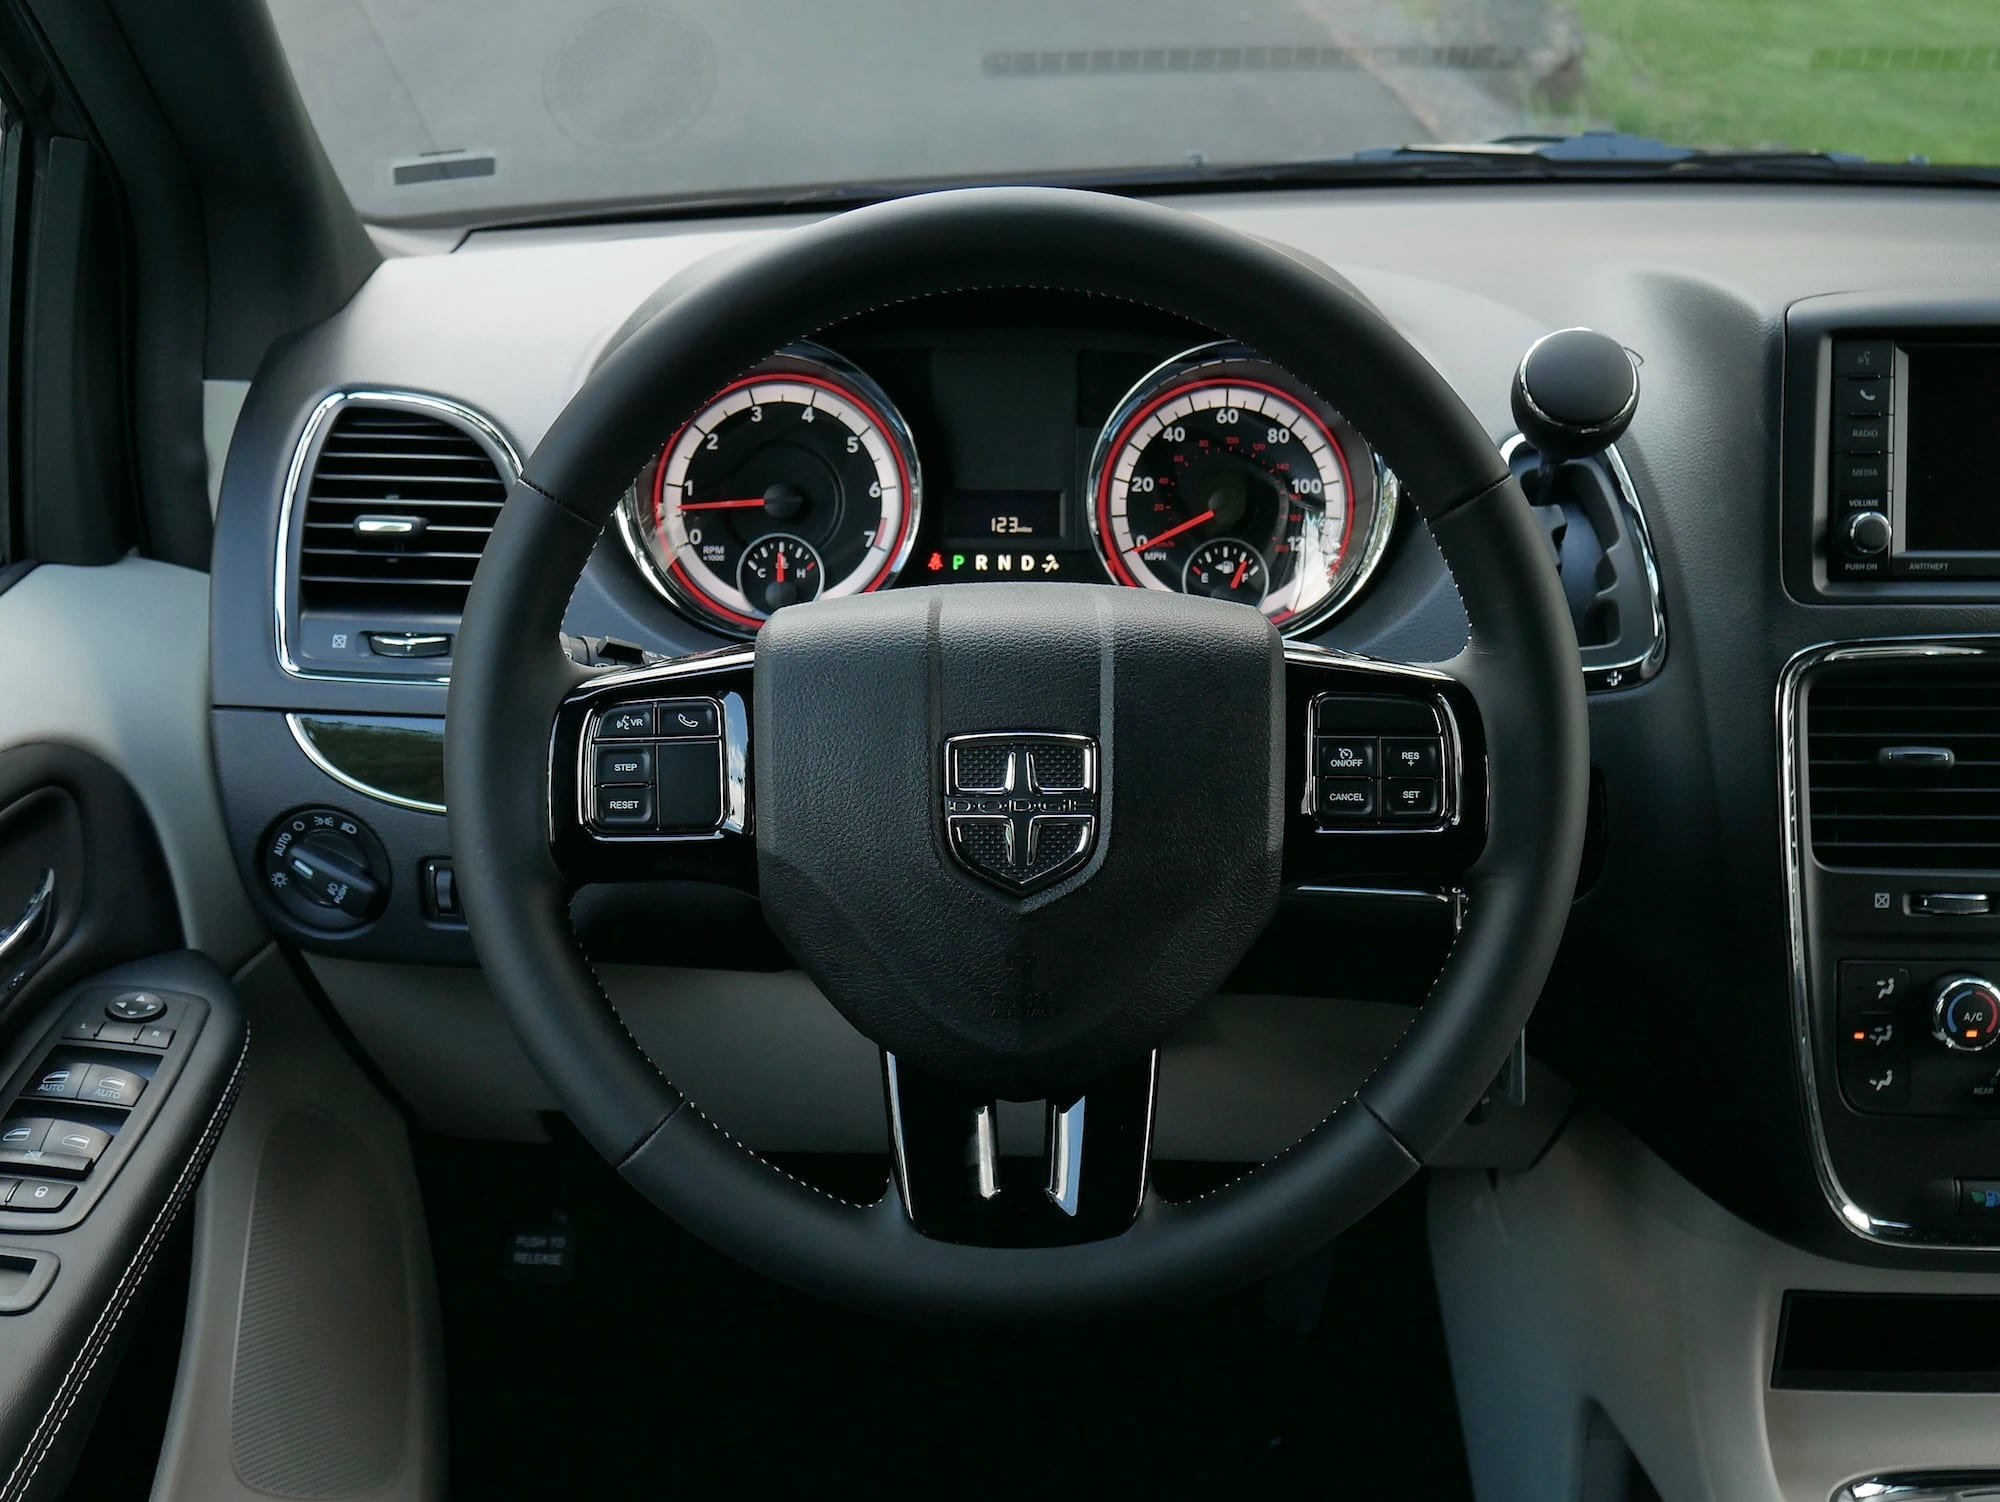 2019 Dodge Grand Caravan steering wheel